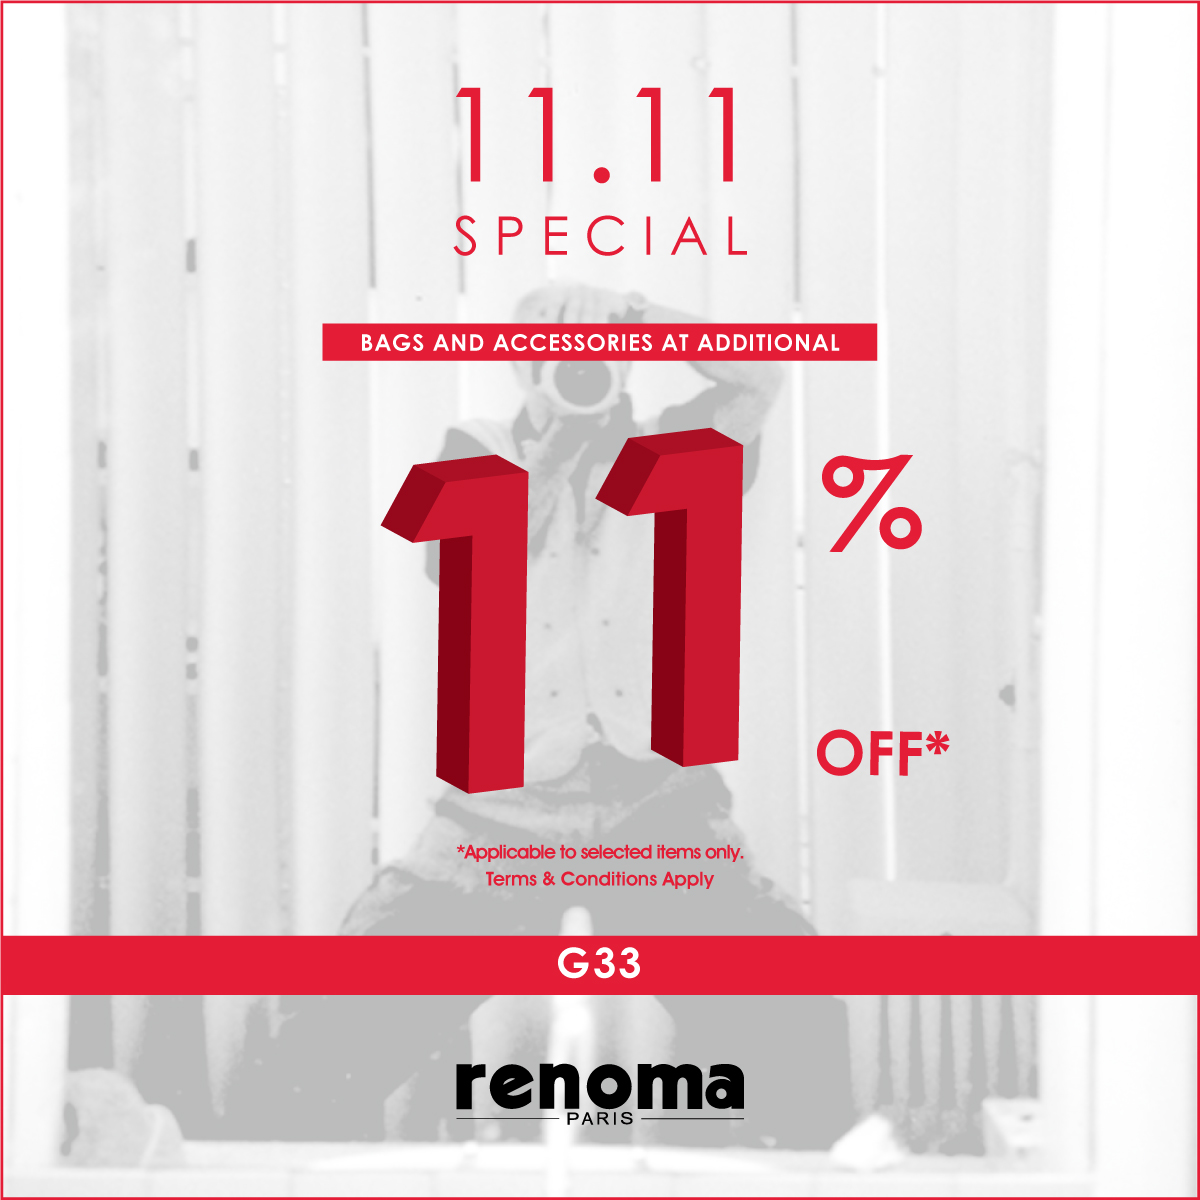 1111Special-Renoma-G33